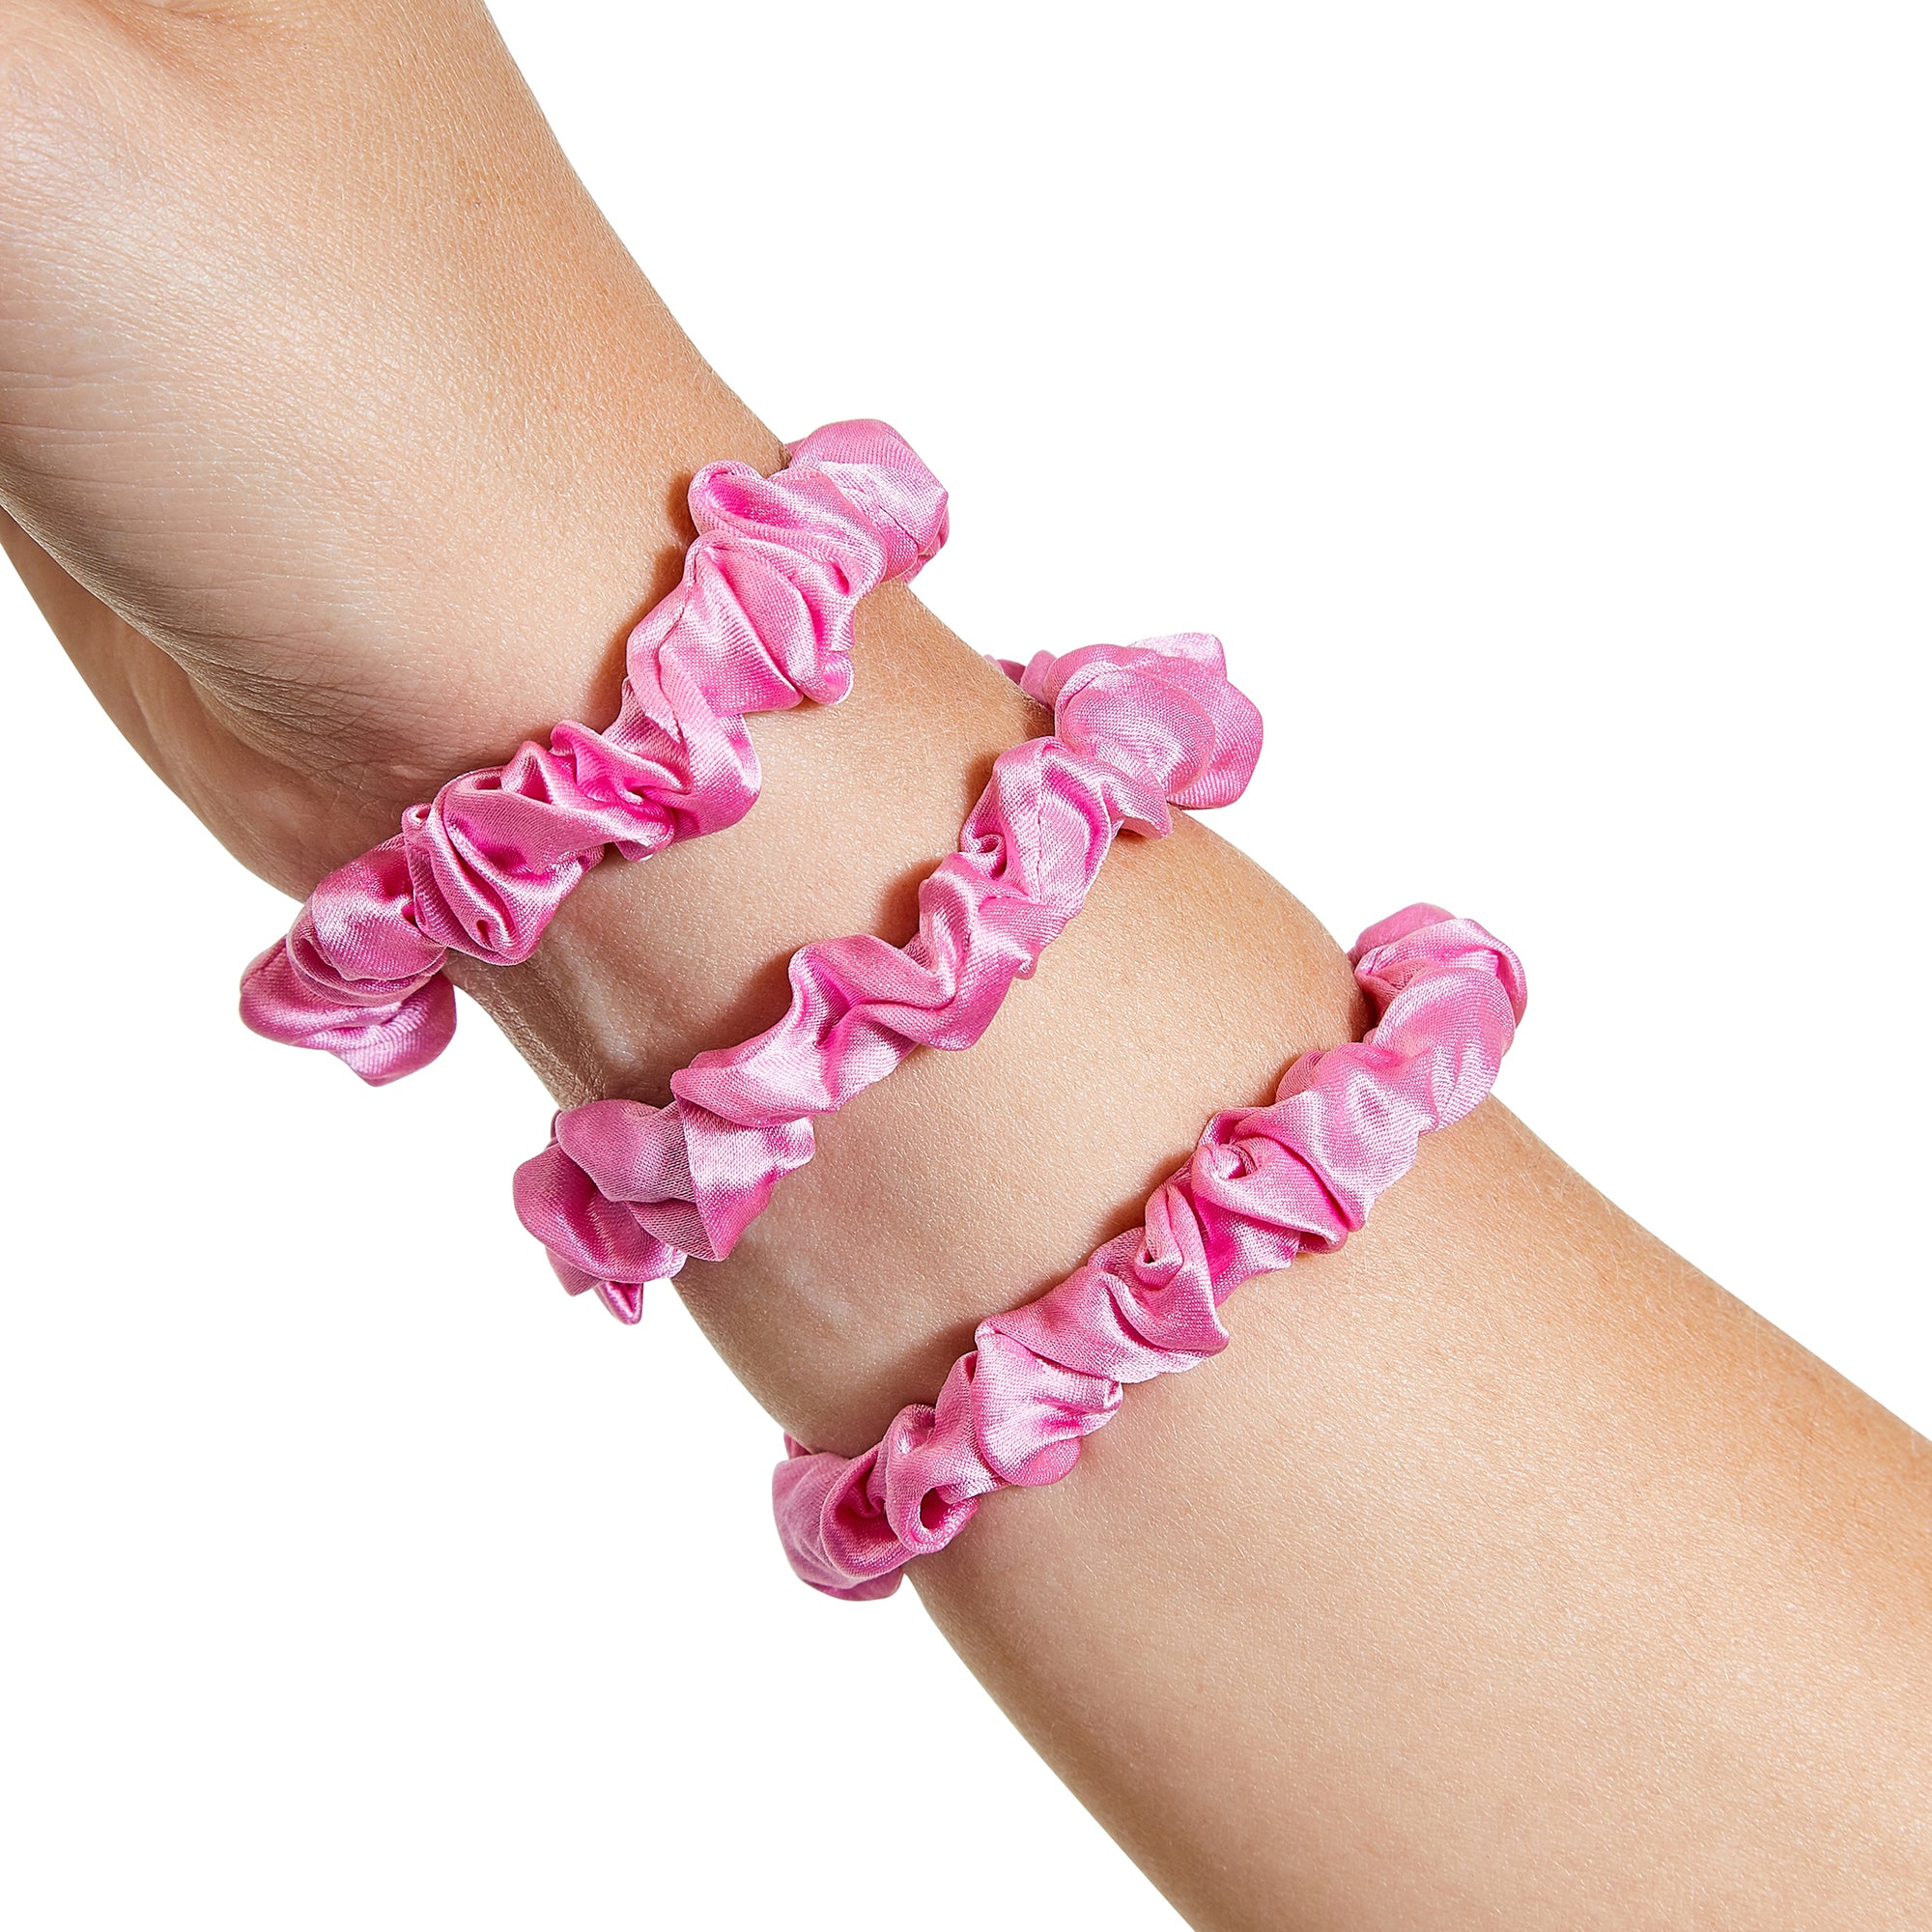 Only Curls Silk Scrunchies - Hot Pink Mini - Only Curls